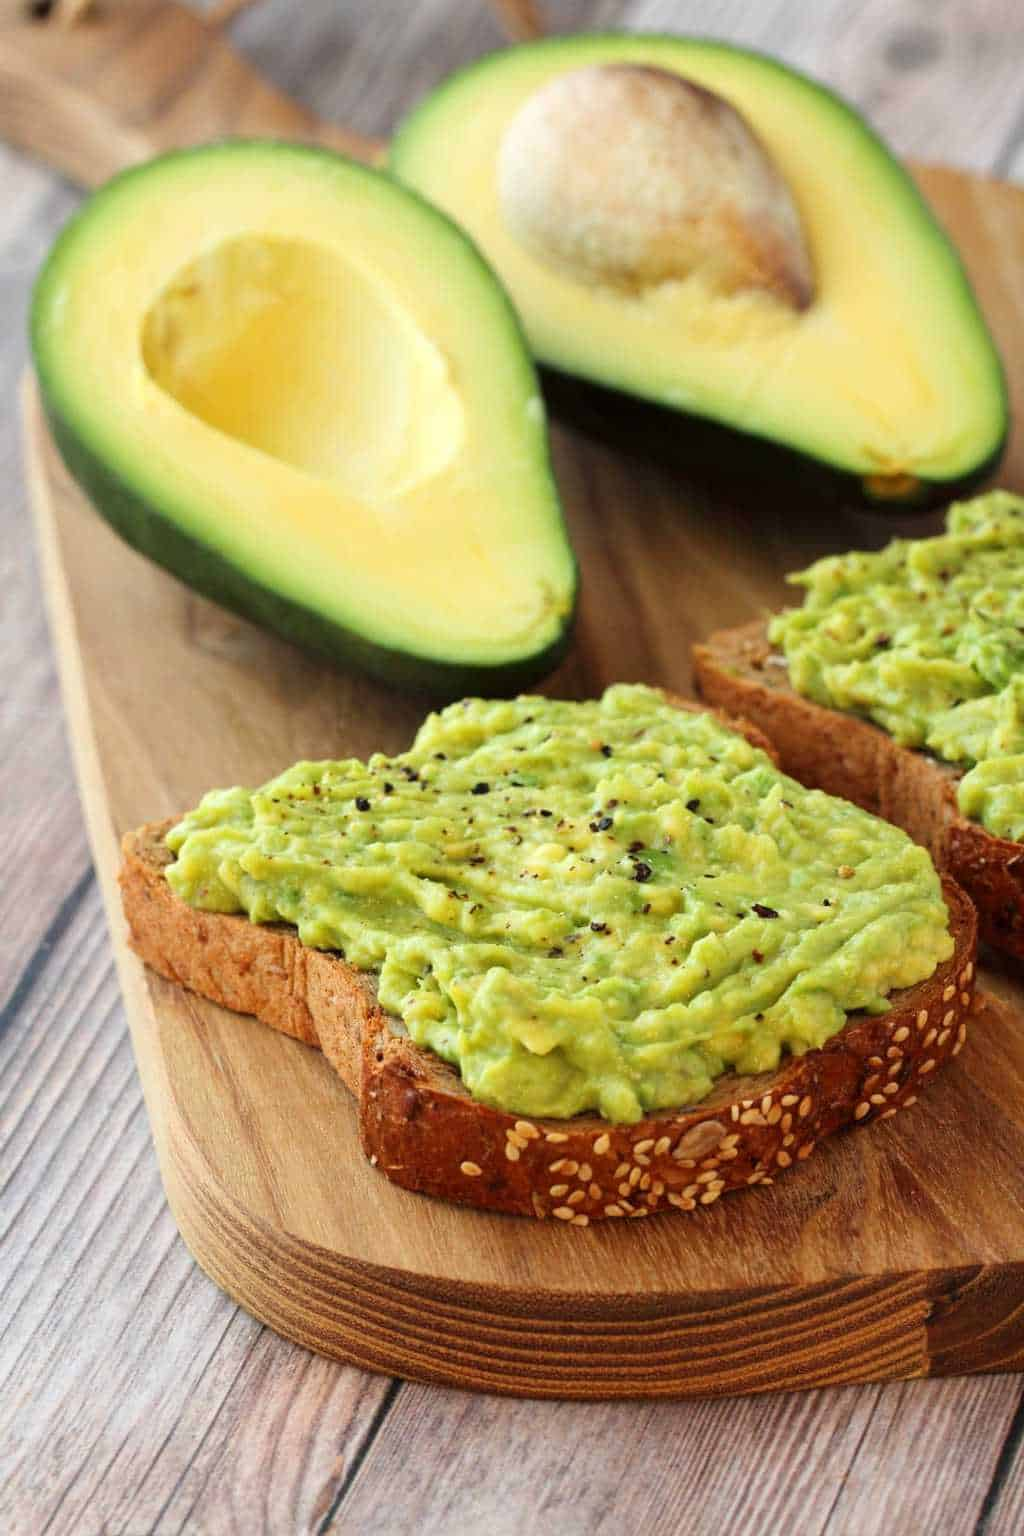 Avocado Toast topped with black pepper. Avocado halves in the background.